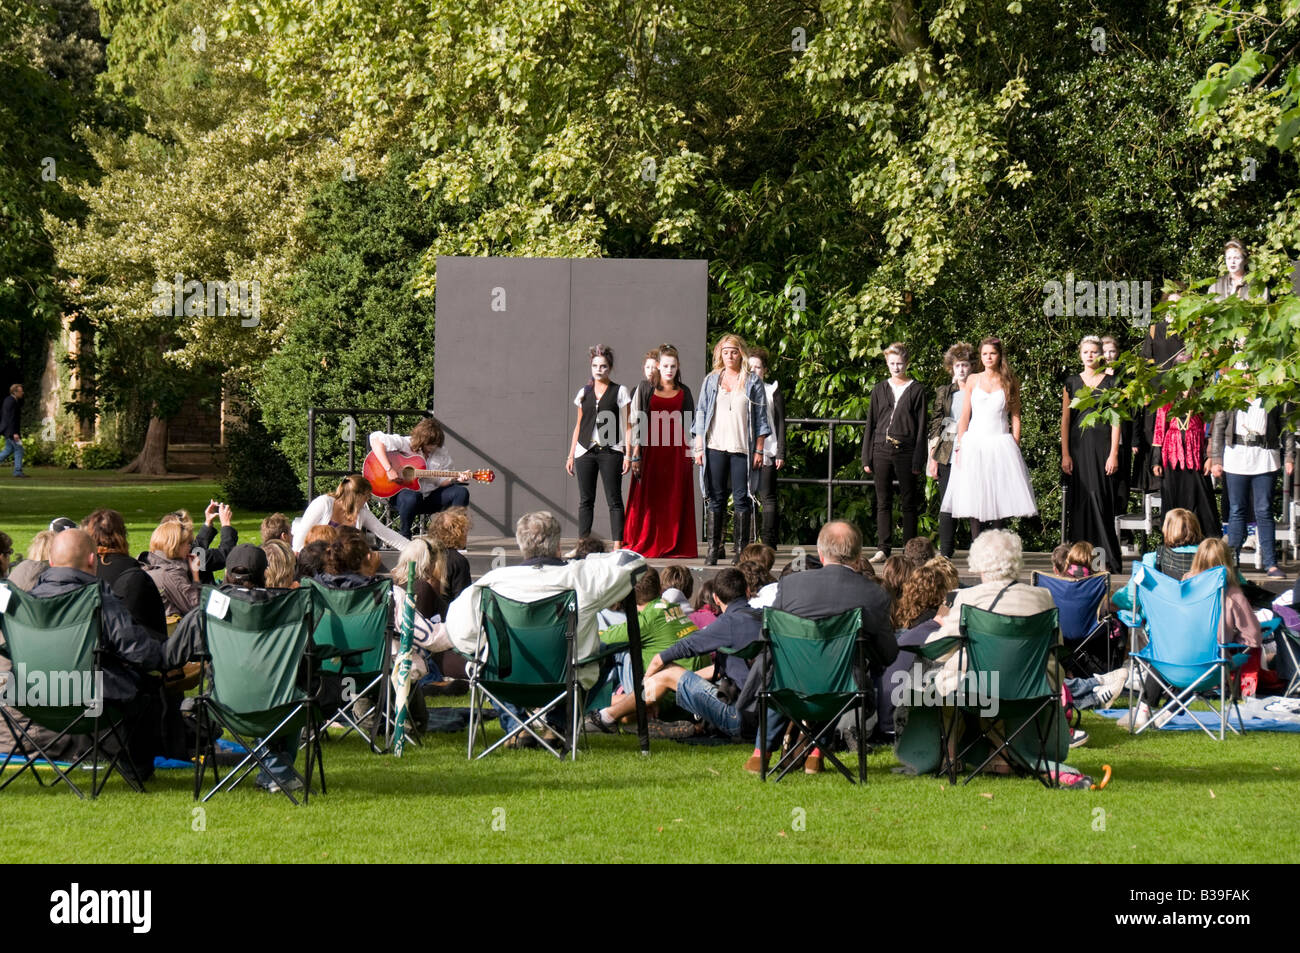 Openair youth theatre stratford-upon-avon shakespeare country - Stock Image